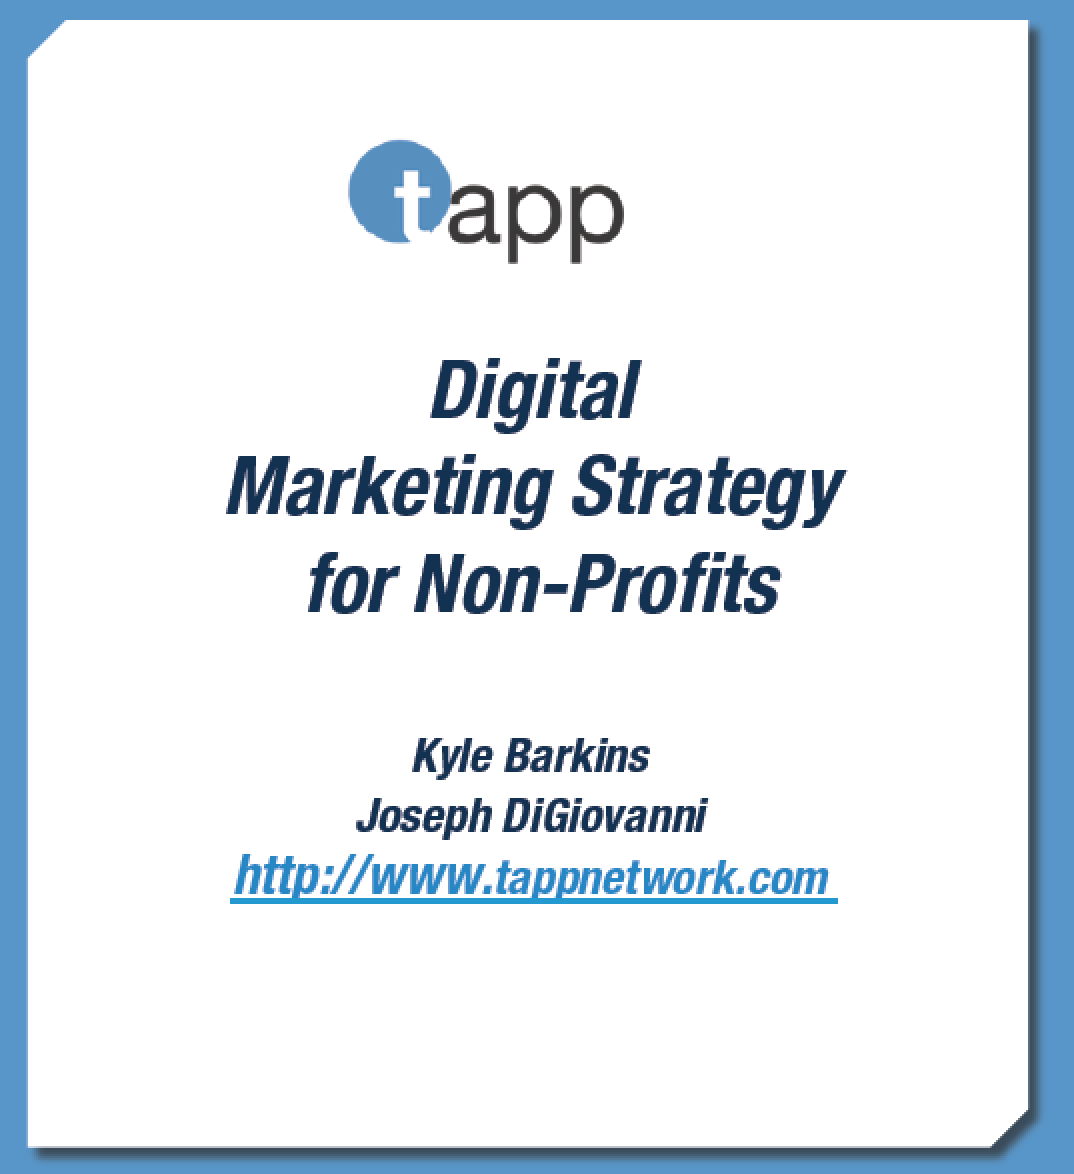 Digital Marketing for Nonprofits Strategy Guide